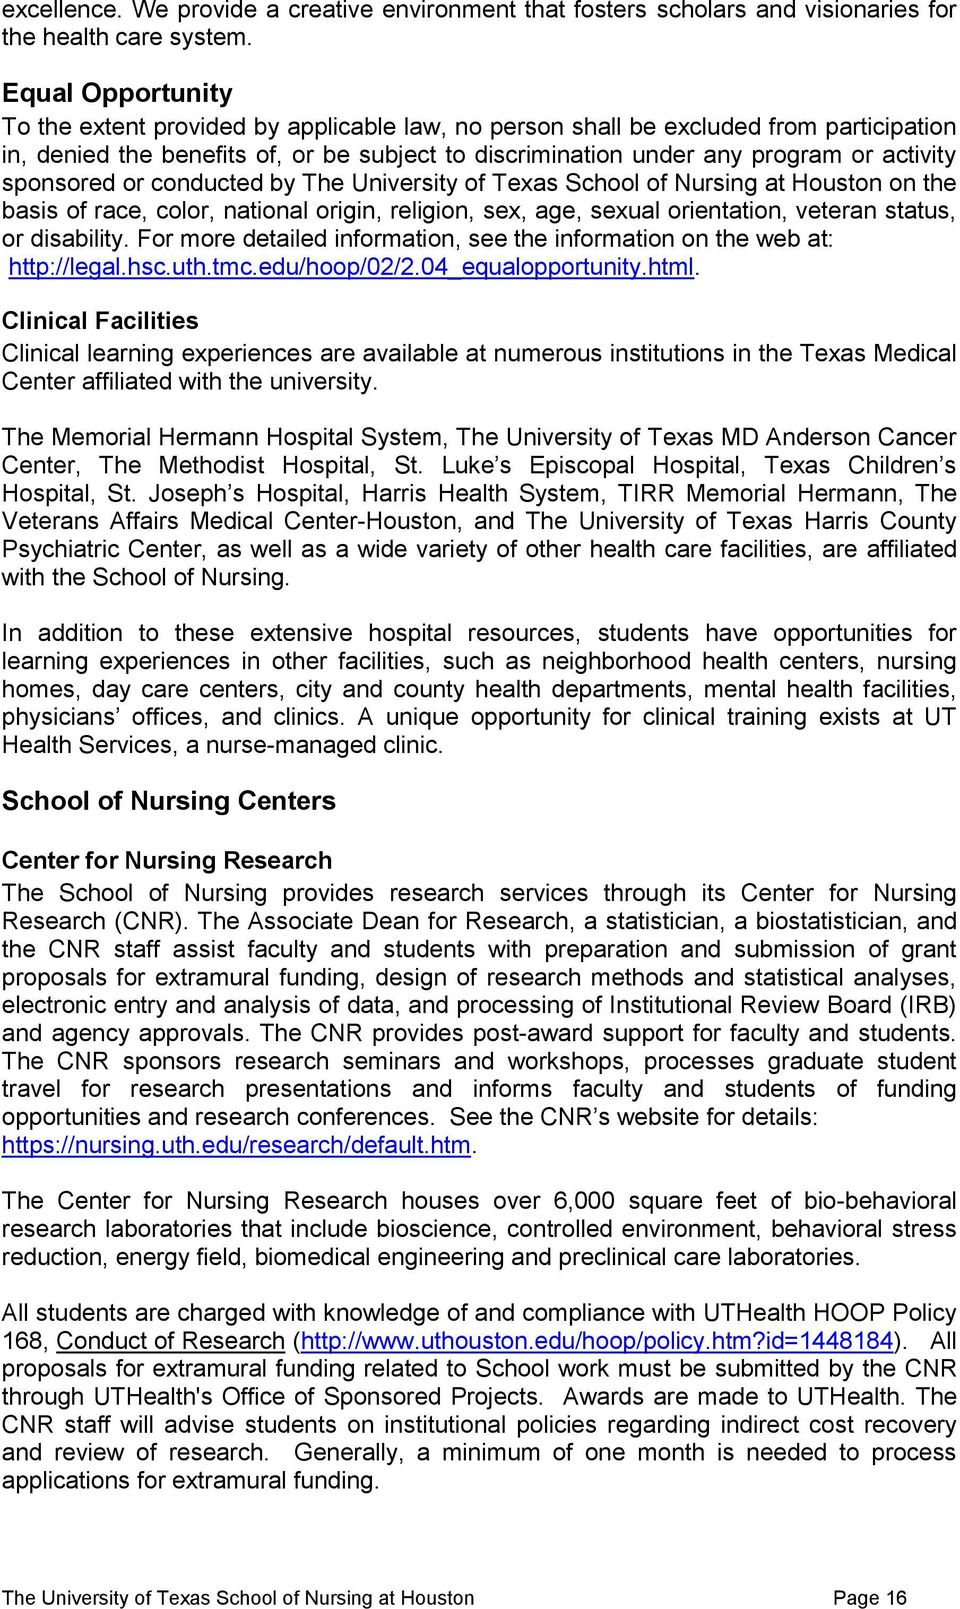 sponsored or conducted by The University of Texas School of Nursing at Houston on the basis of race, color, national origin, religion, sex, age, sexual orientation, veteran status, or disability.